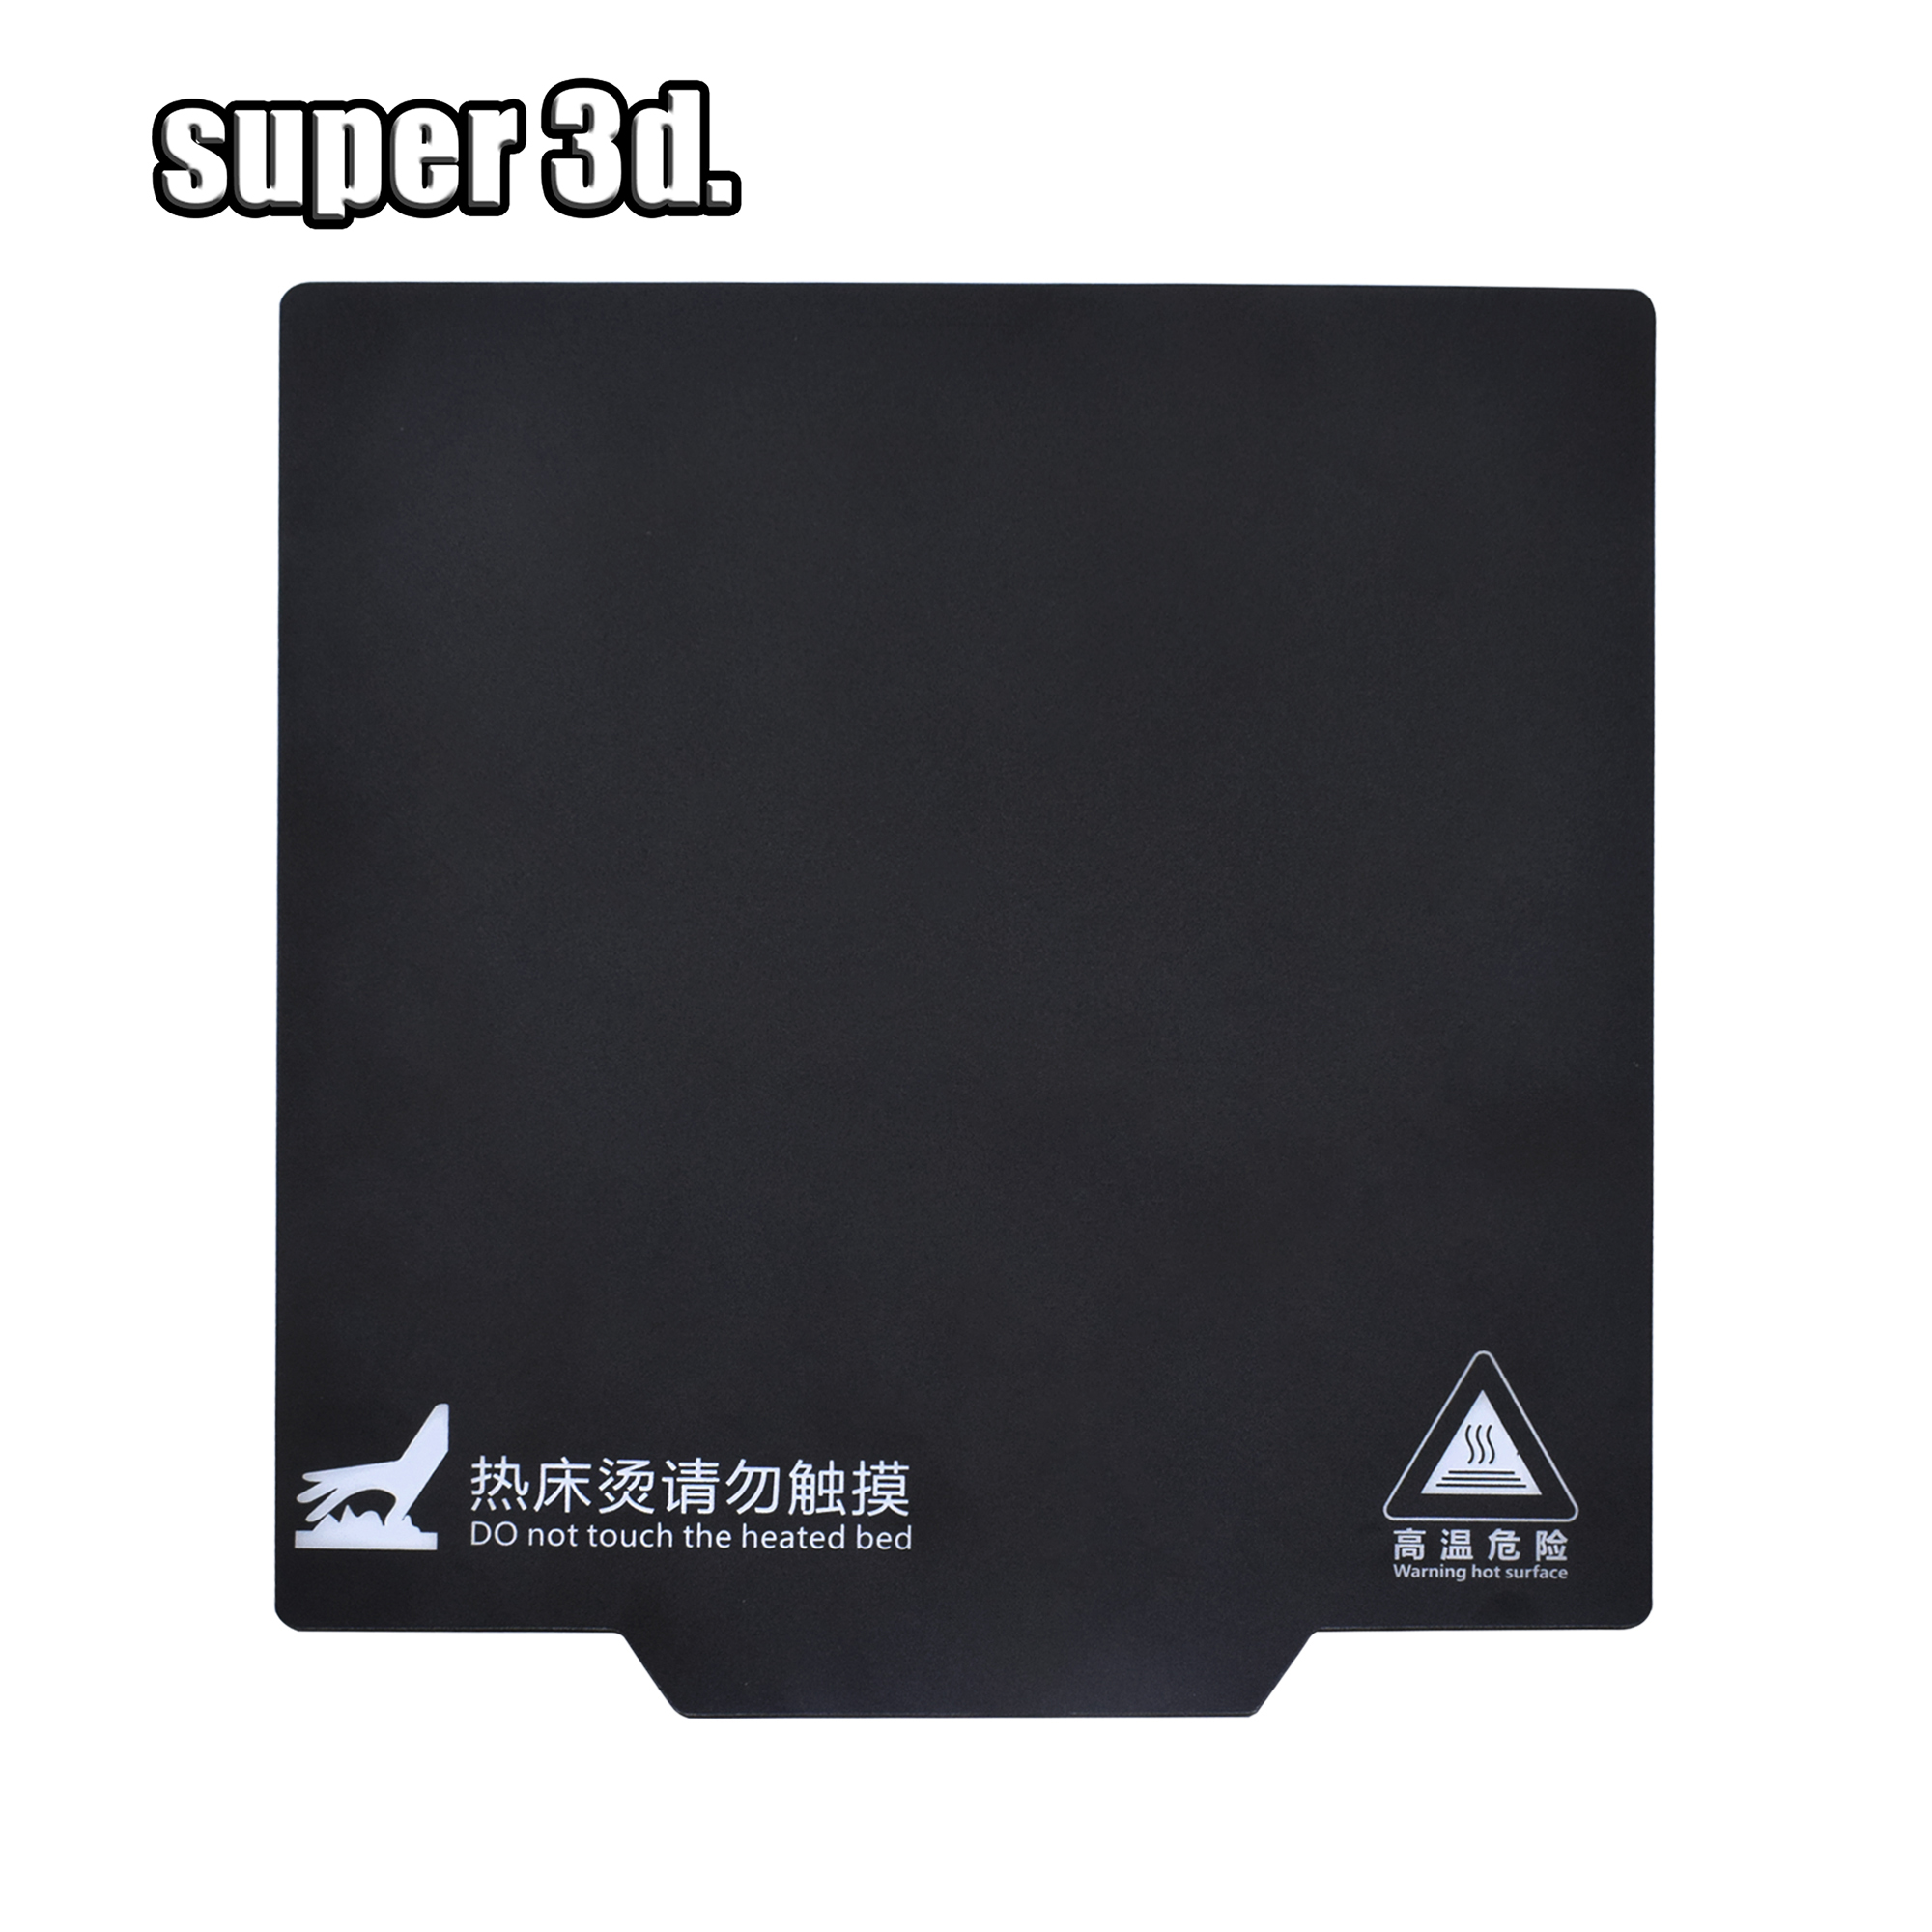 3D Printer Parts Magnetic Print Bed Tape 200/214/235/310mm Square Heatbed Sticker Hot Bed Build Plate Tape Surface Flex Plate